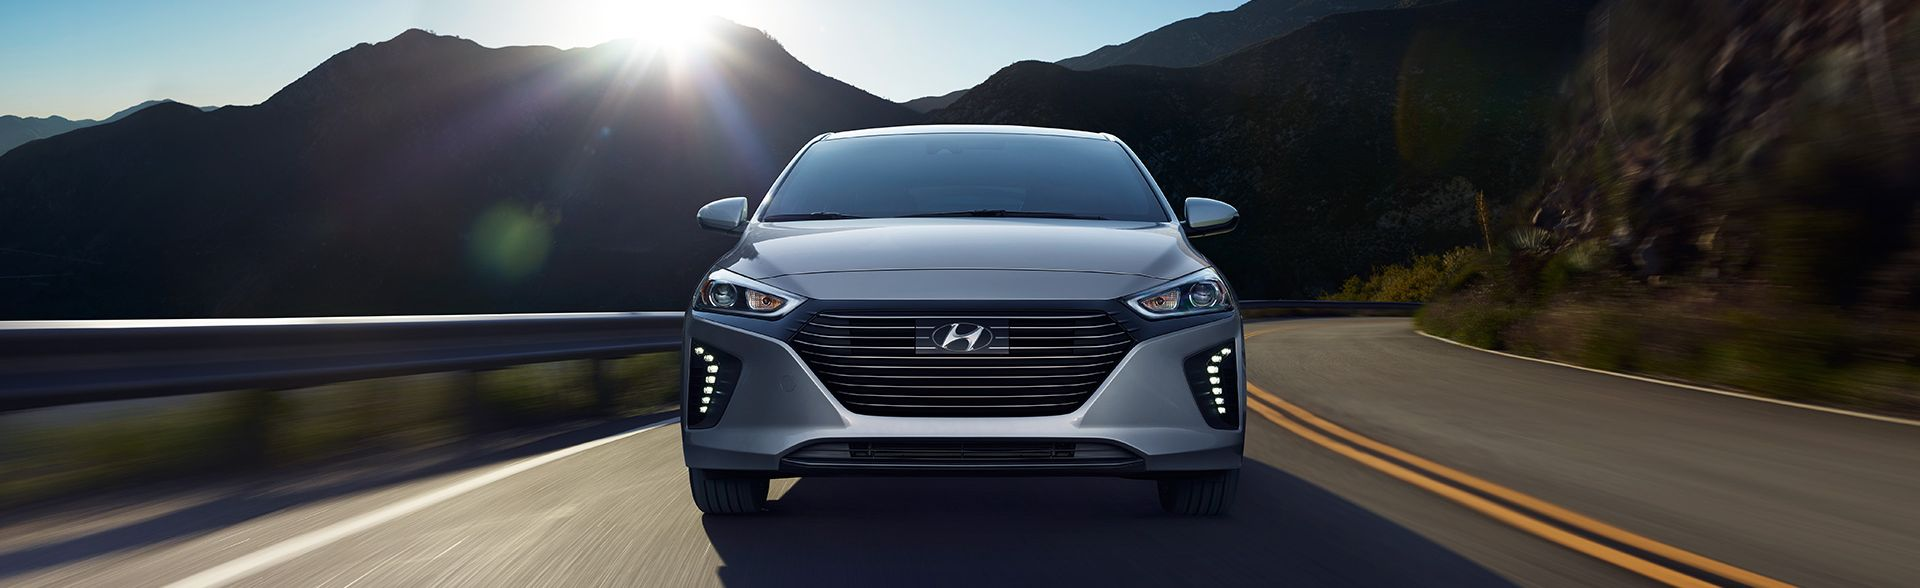 2017 Hyundai Ioniq Hybrid Leasing in Capitol Heights, MD